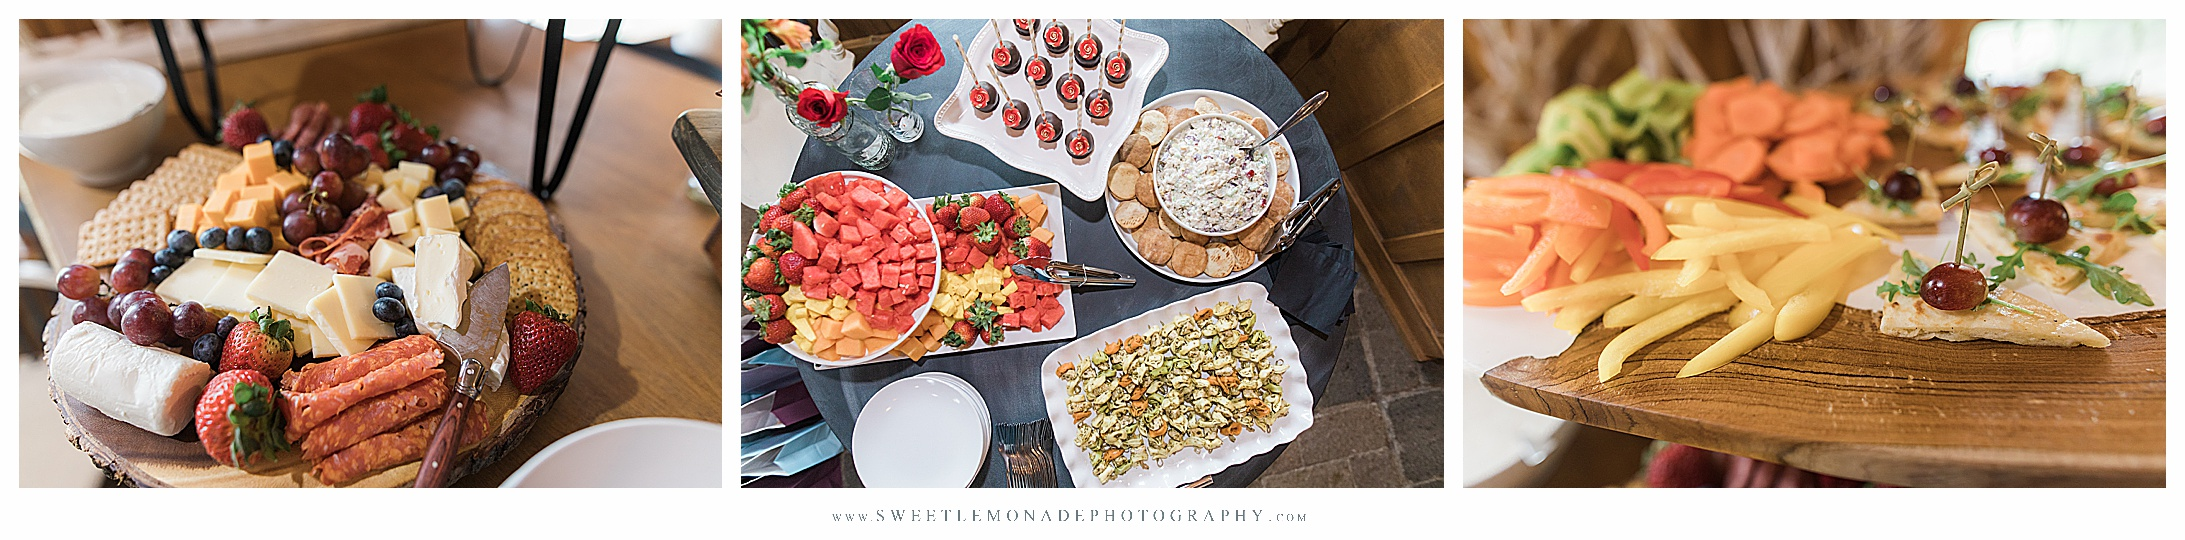 champaign-illinois-caterer-pan-cake-catering-sweet-lemonade-photography_2412.jpg